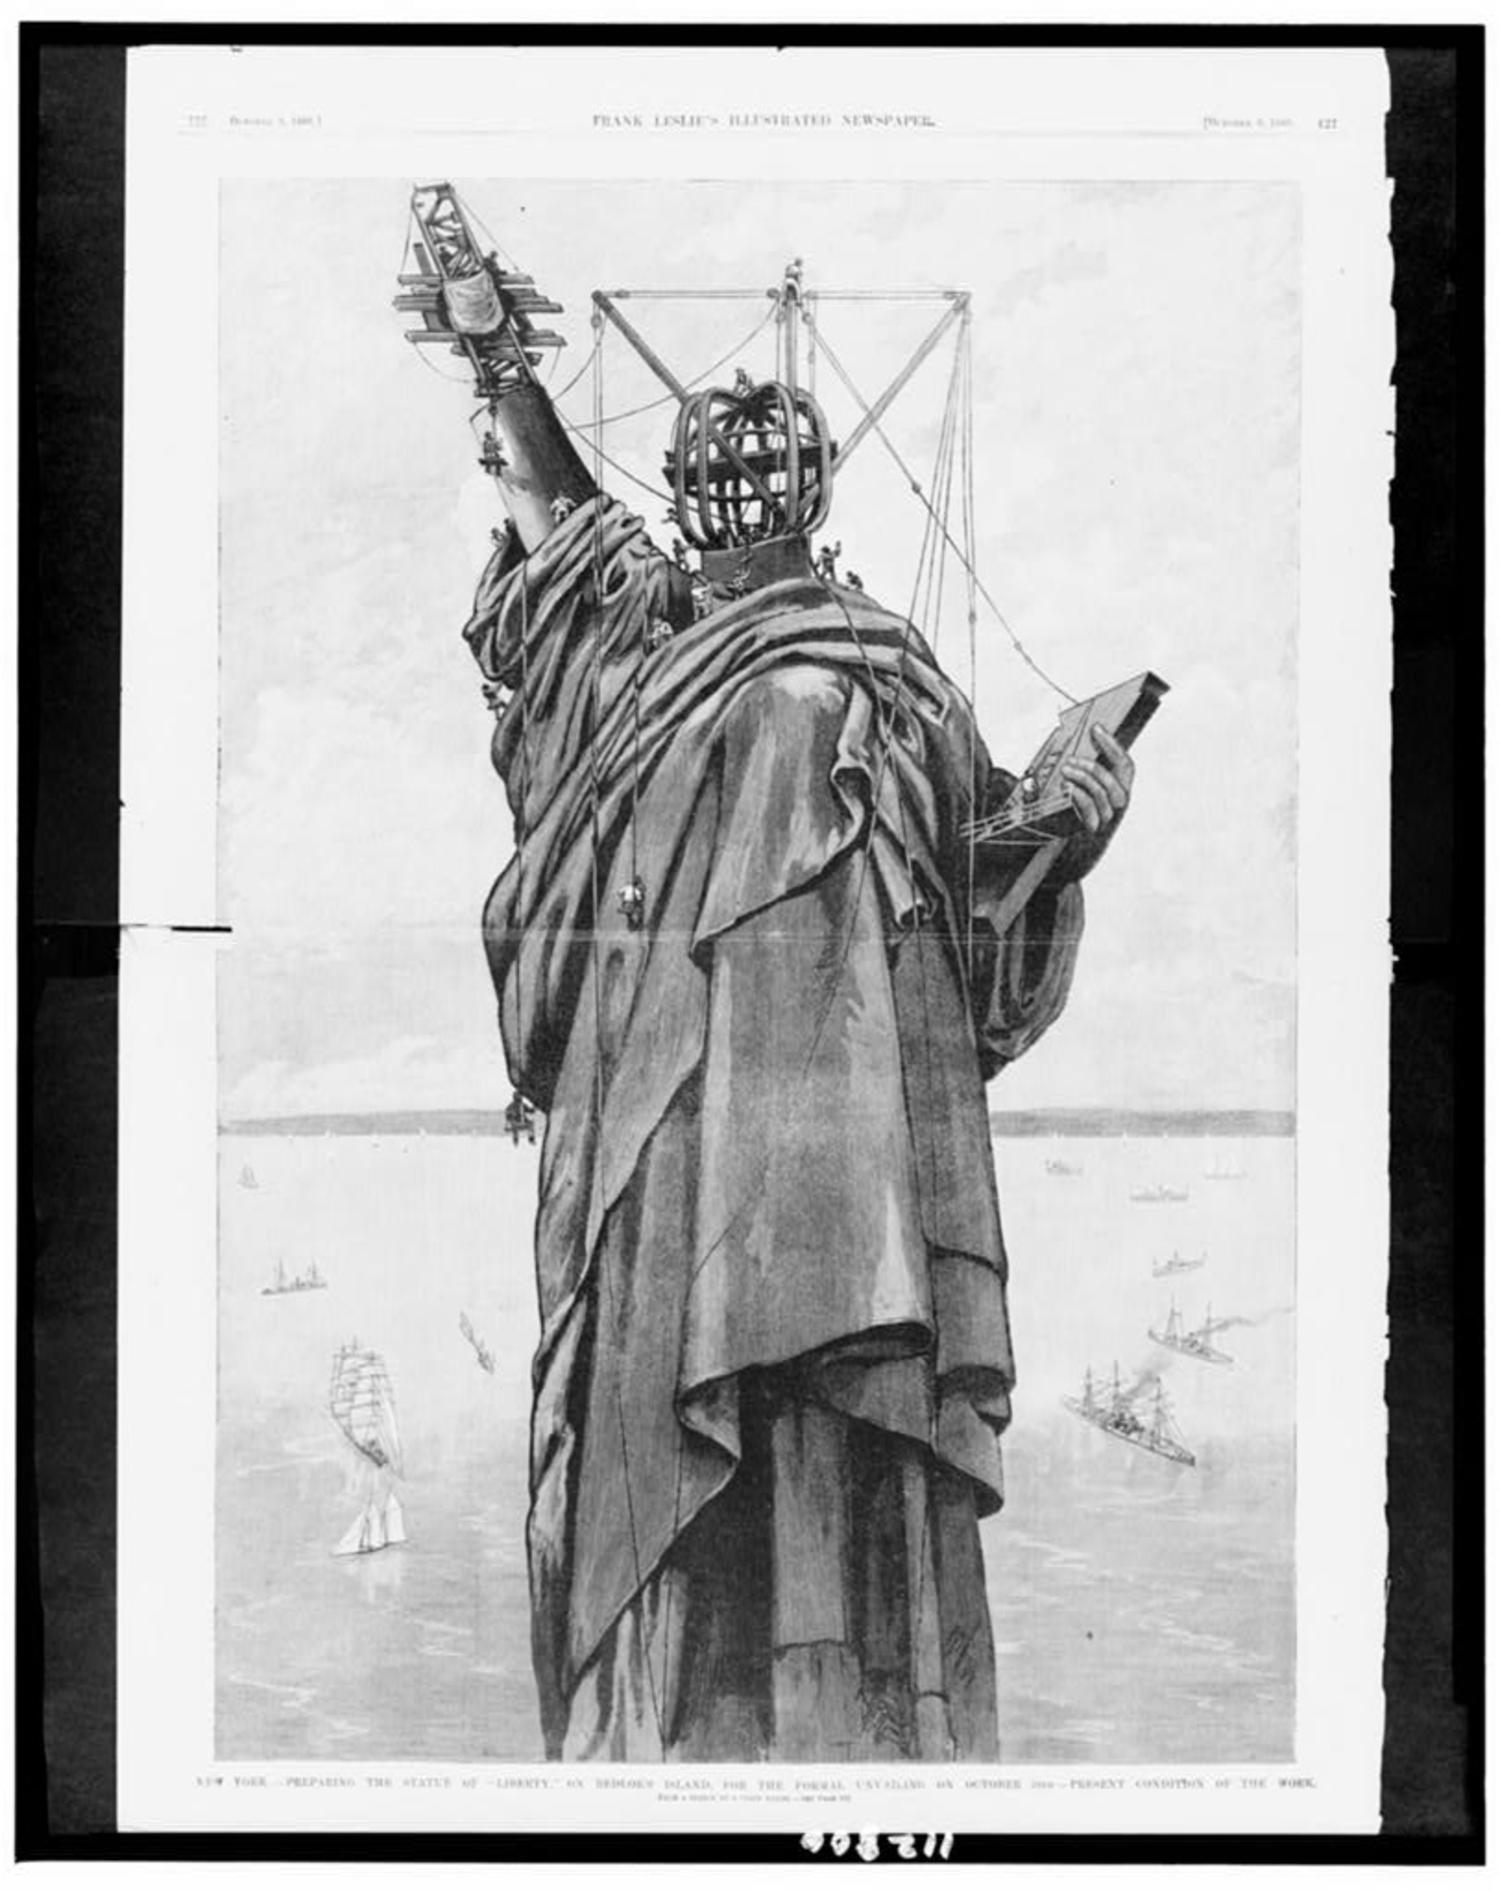 "Preparing the Statue of ""liberty"" on Bedloe's Island, for the formal unvailing [sic] on October 28th - Present condition of the work / from a sketch by a staff artist. 1886."